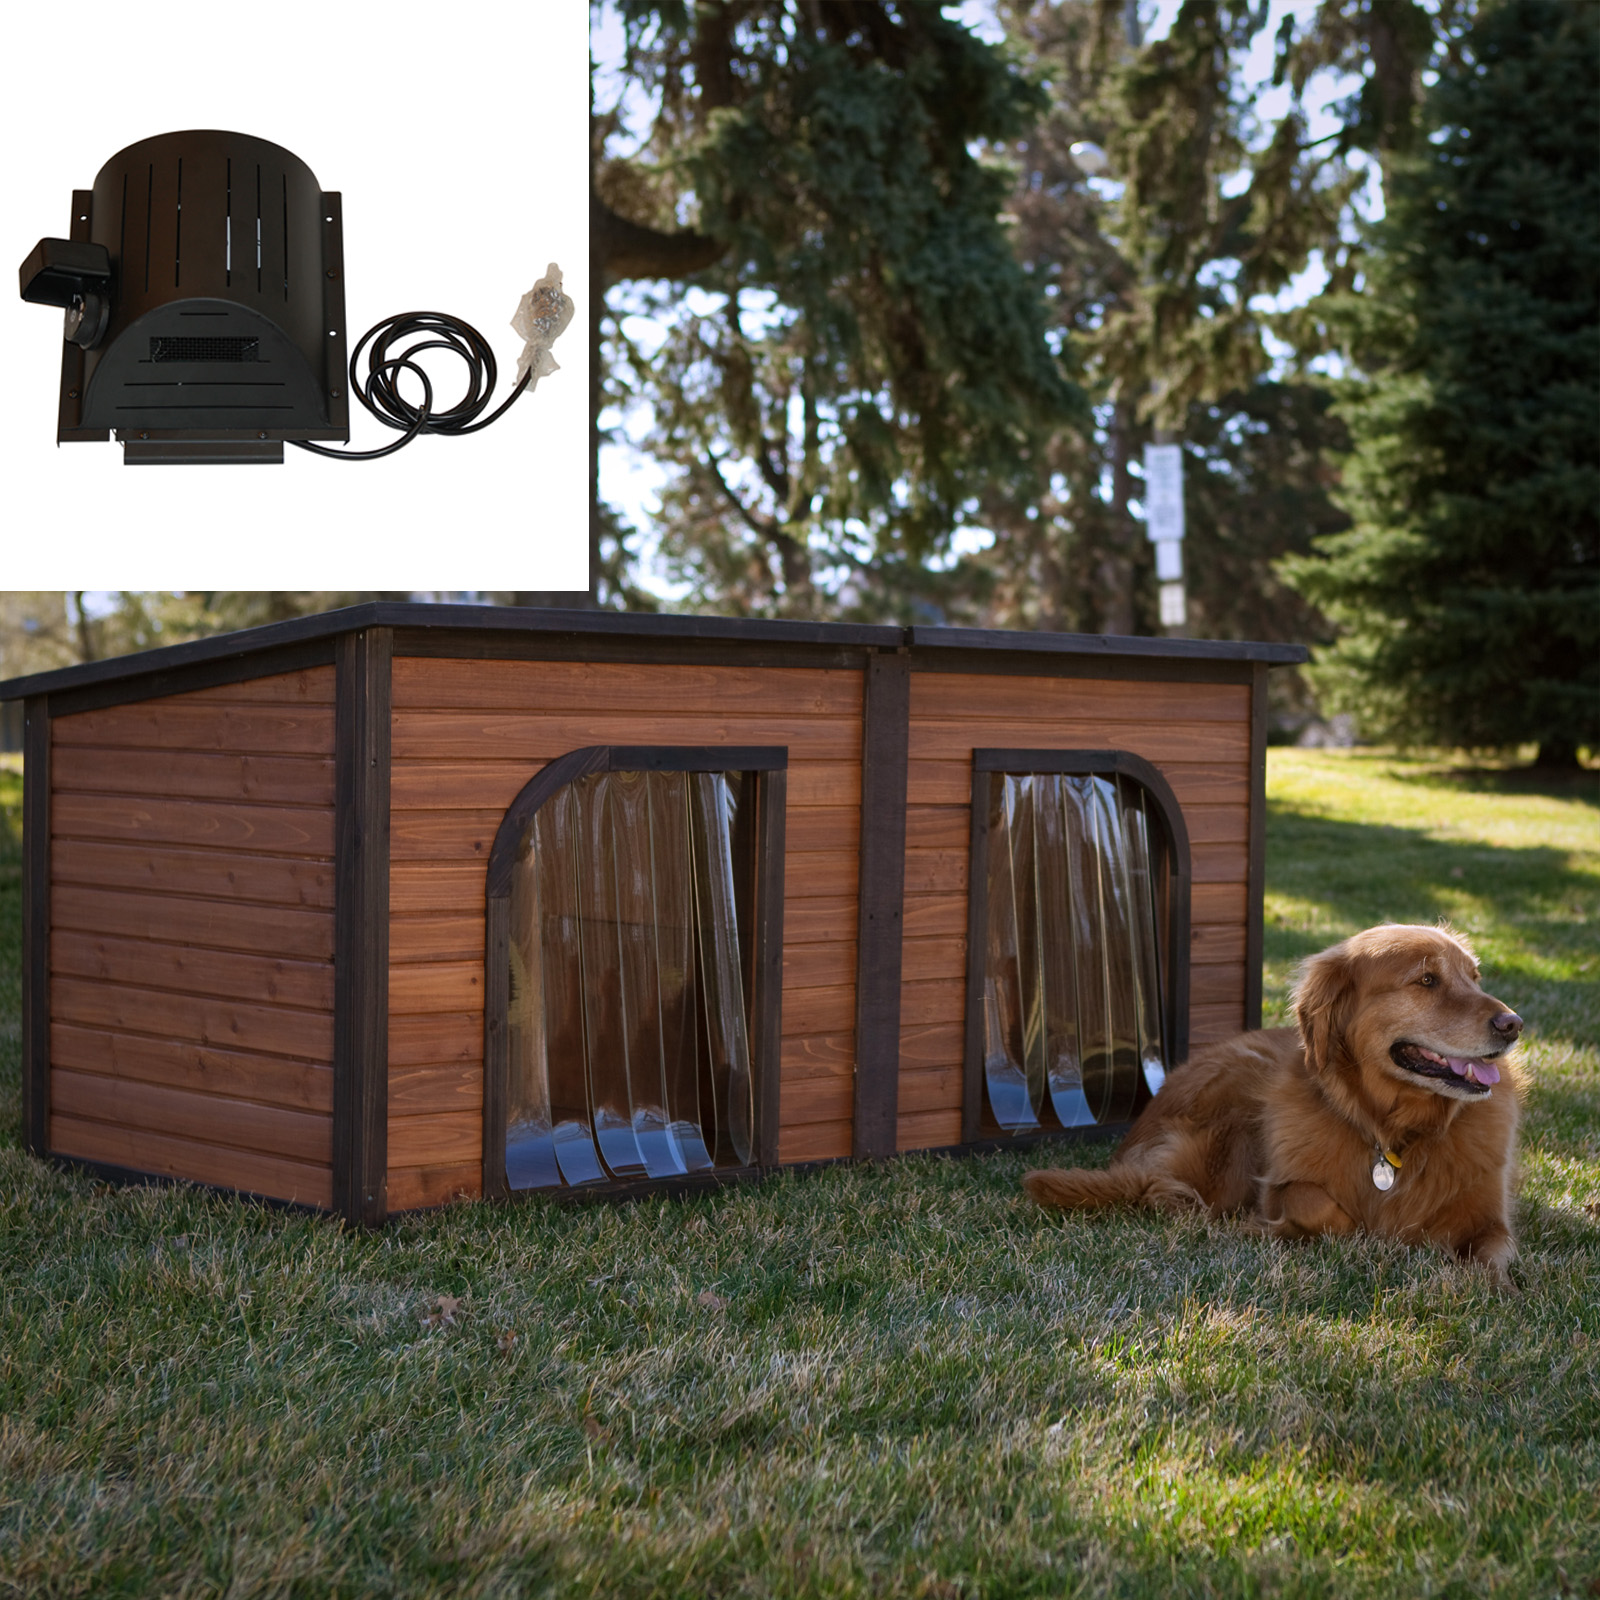 Precision pets extreme duplex dog house with cooling fan for Extreme dog houses